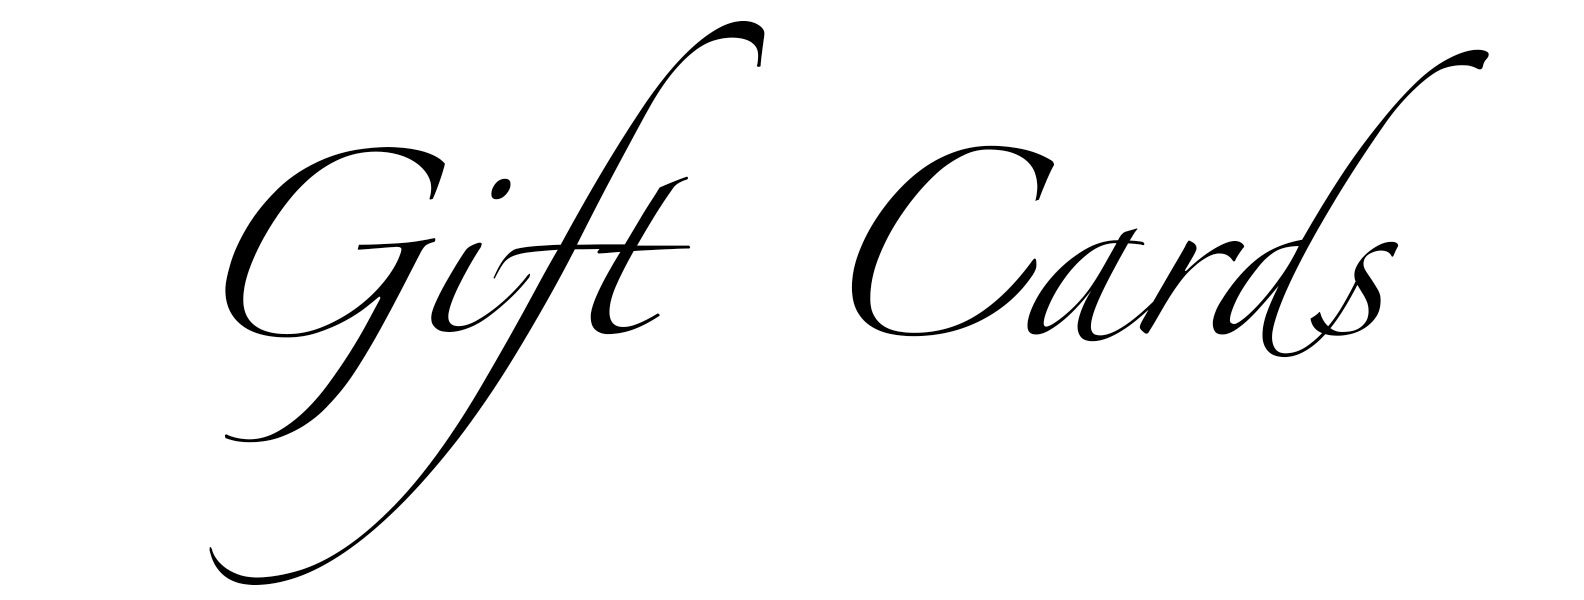 The perfect gift that will undoubtedly make a special someone very happy.  The gift cards can be used towards any photography session or image packages.  My promise is to create an experience; which will be cherished for a lifetime…